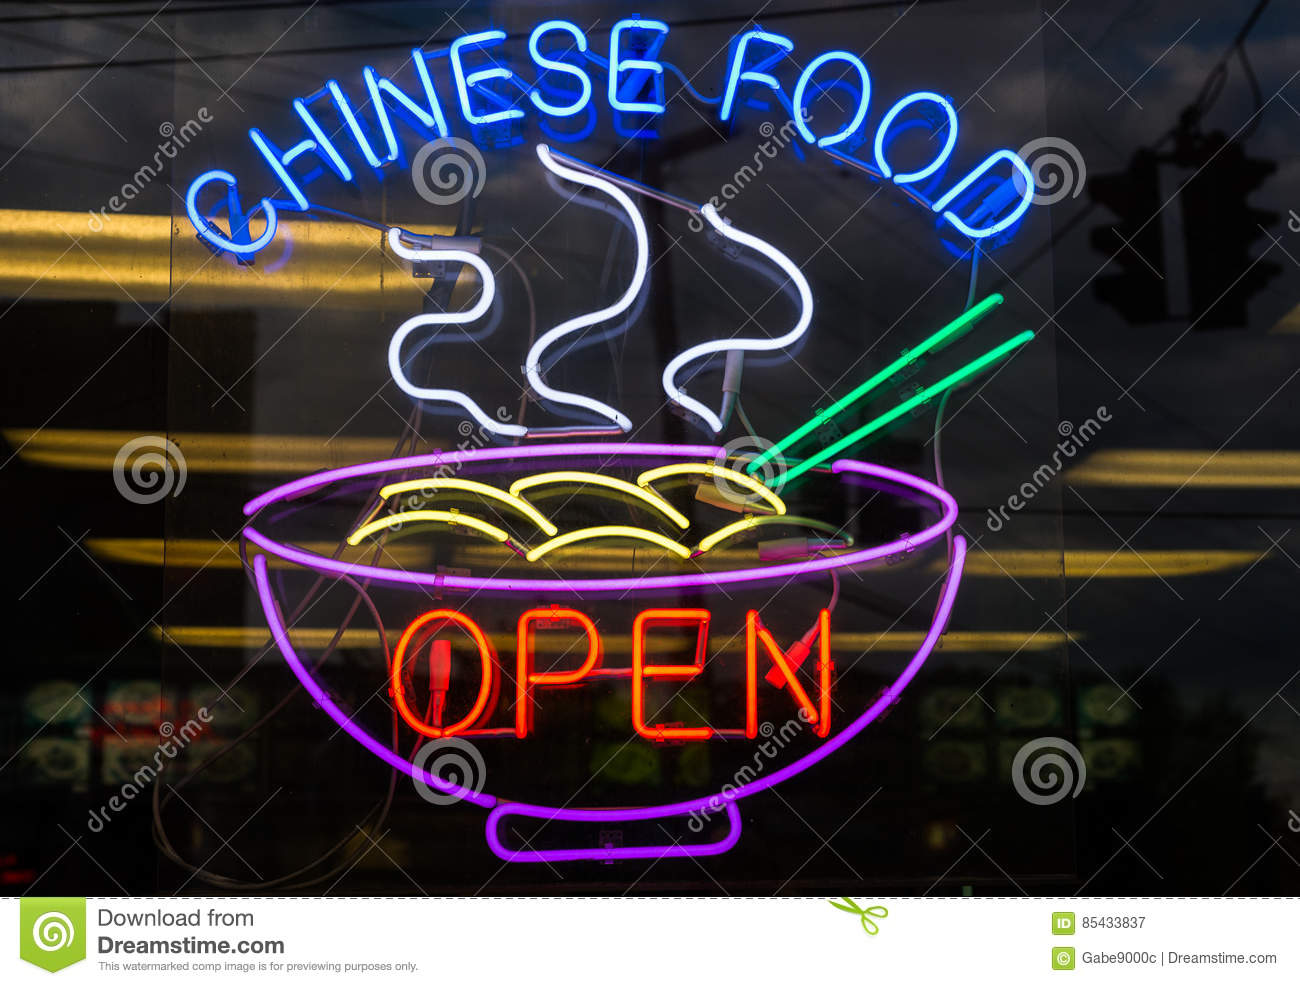 Chinese Food Restaurant Neon Sign Open Stock Image - Image of